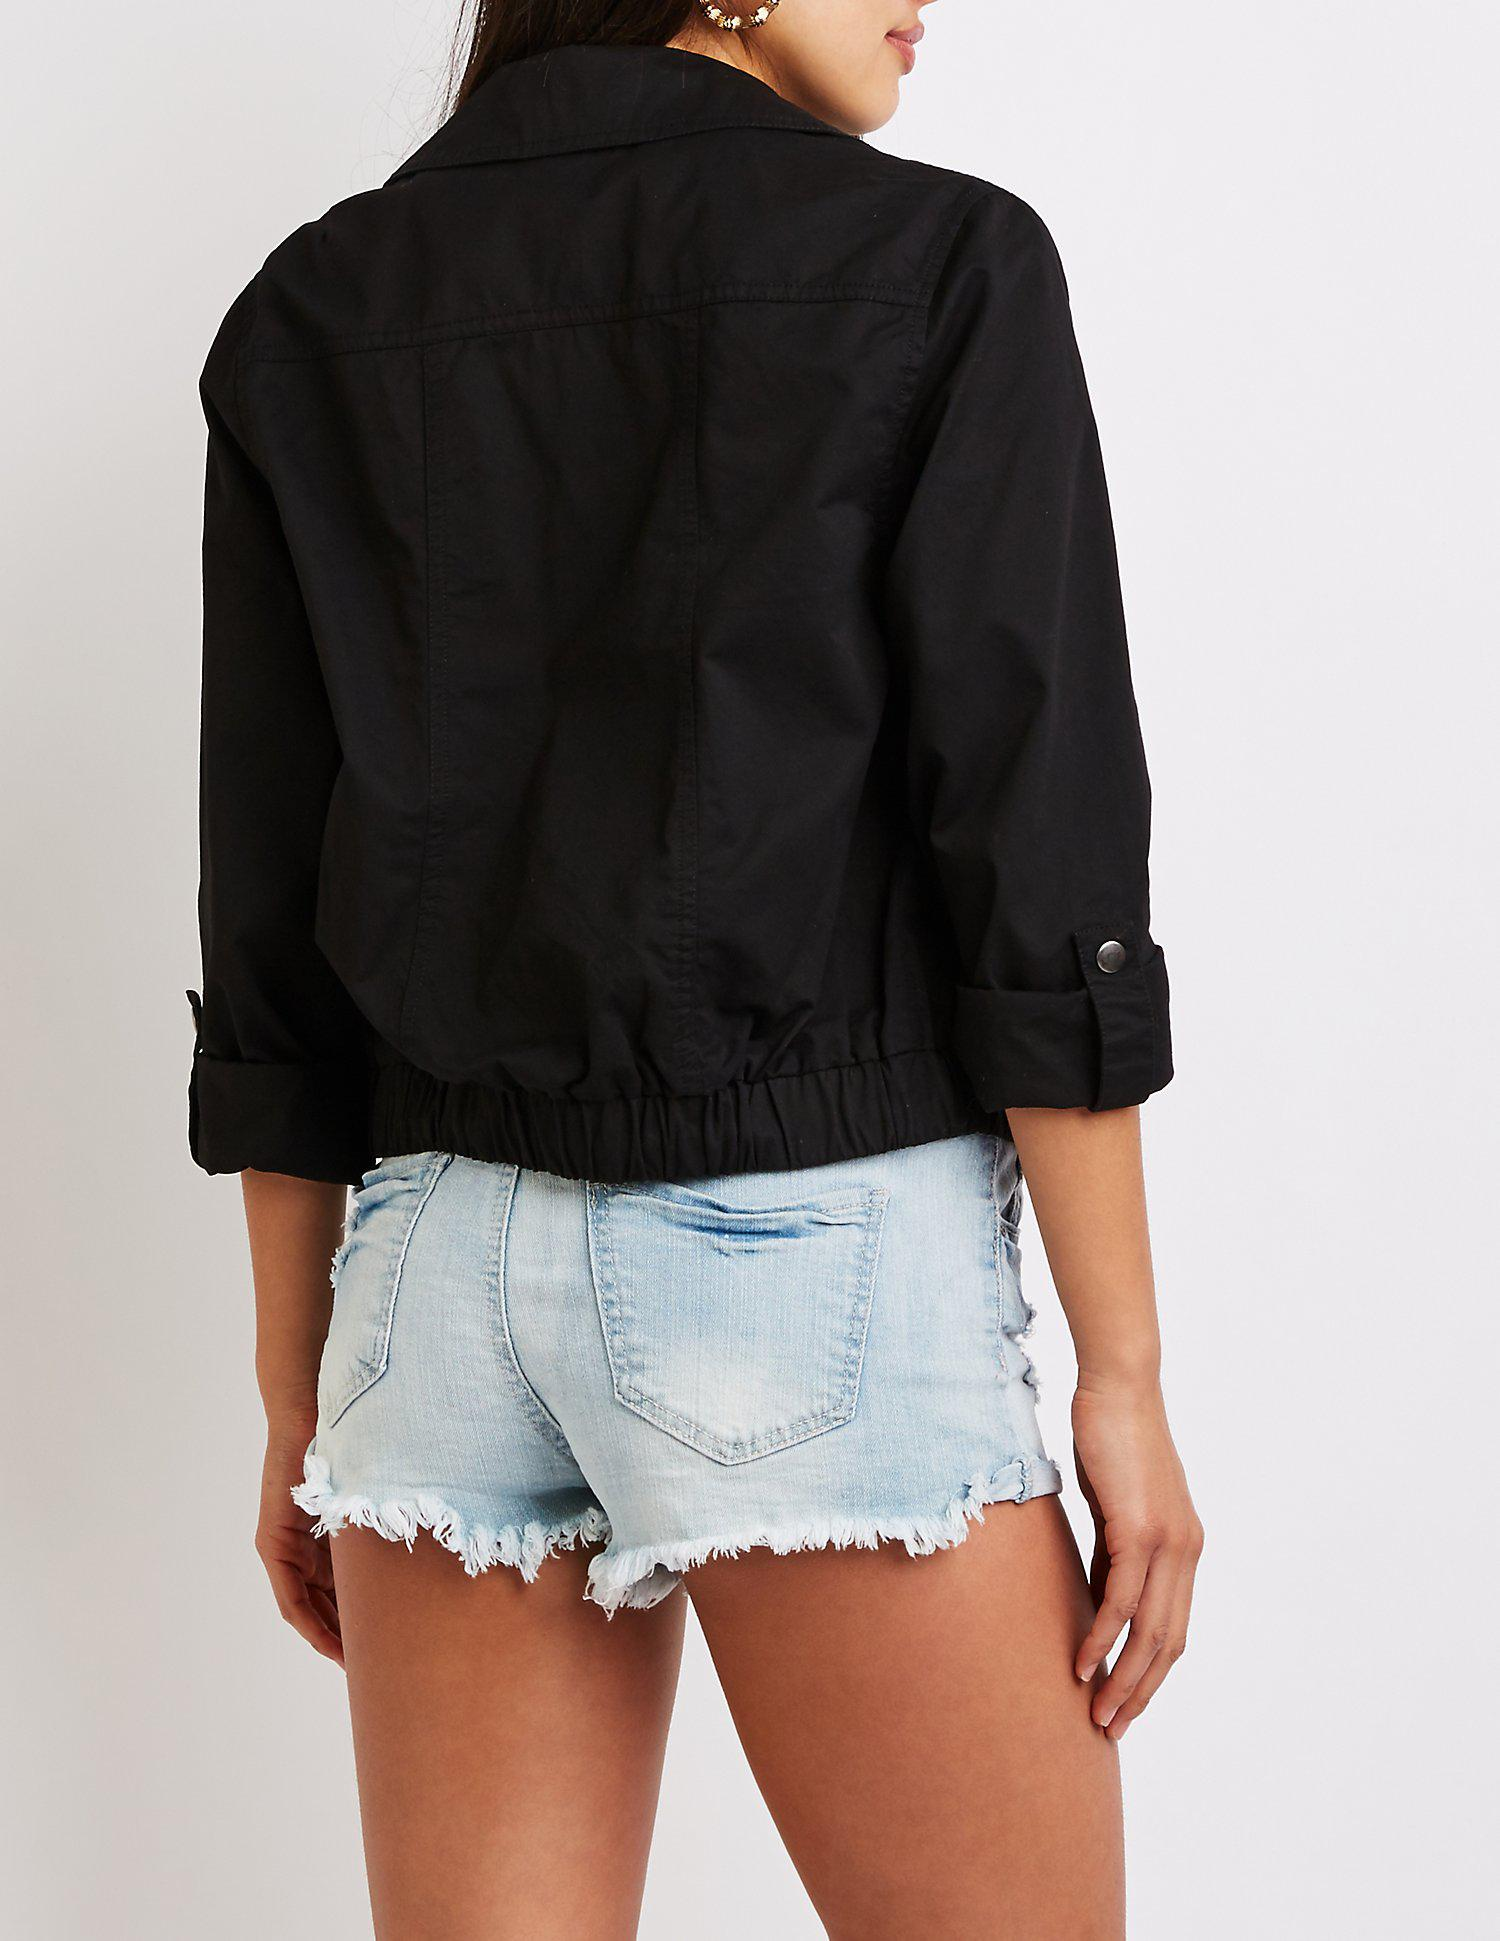 7616d04f864 Lyst - Charlotte Russe Anorak Cropped Jacket in Black